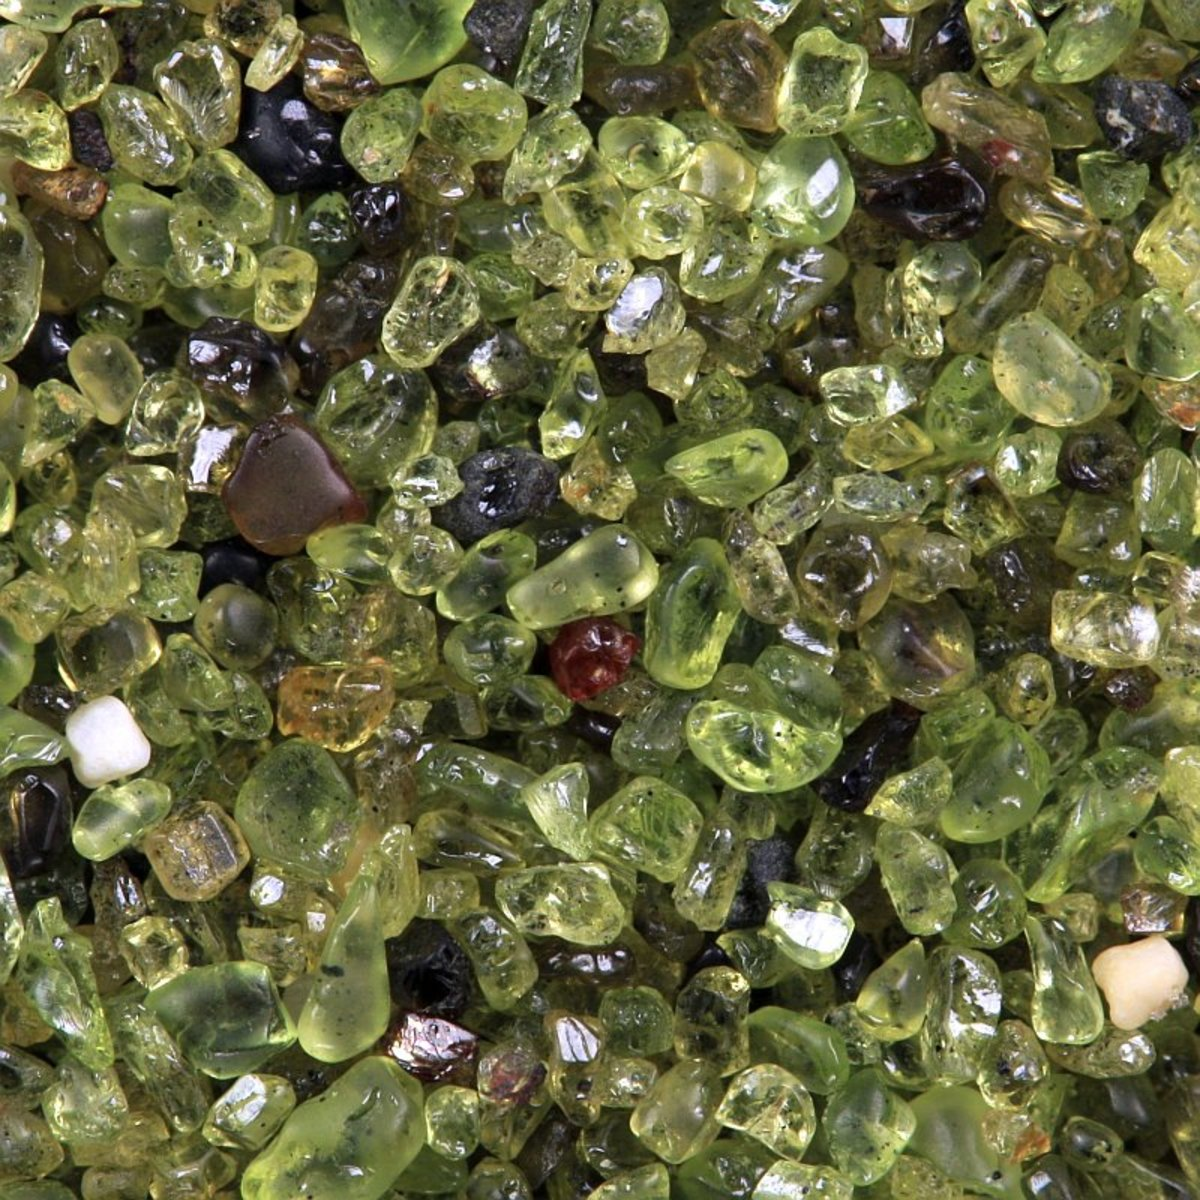 Olivine sand pebbles collected near the Southern Tip of Hawaii